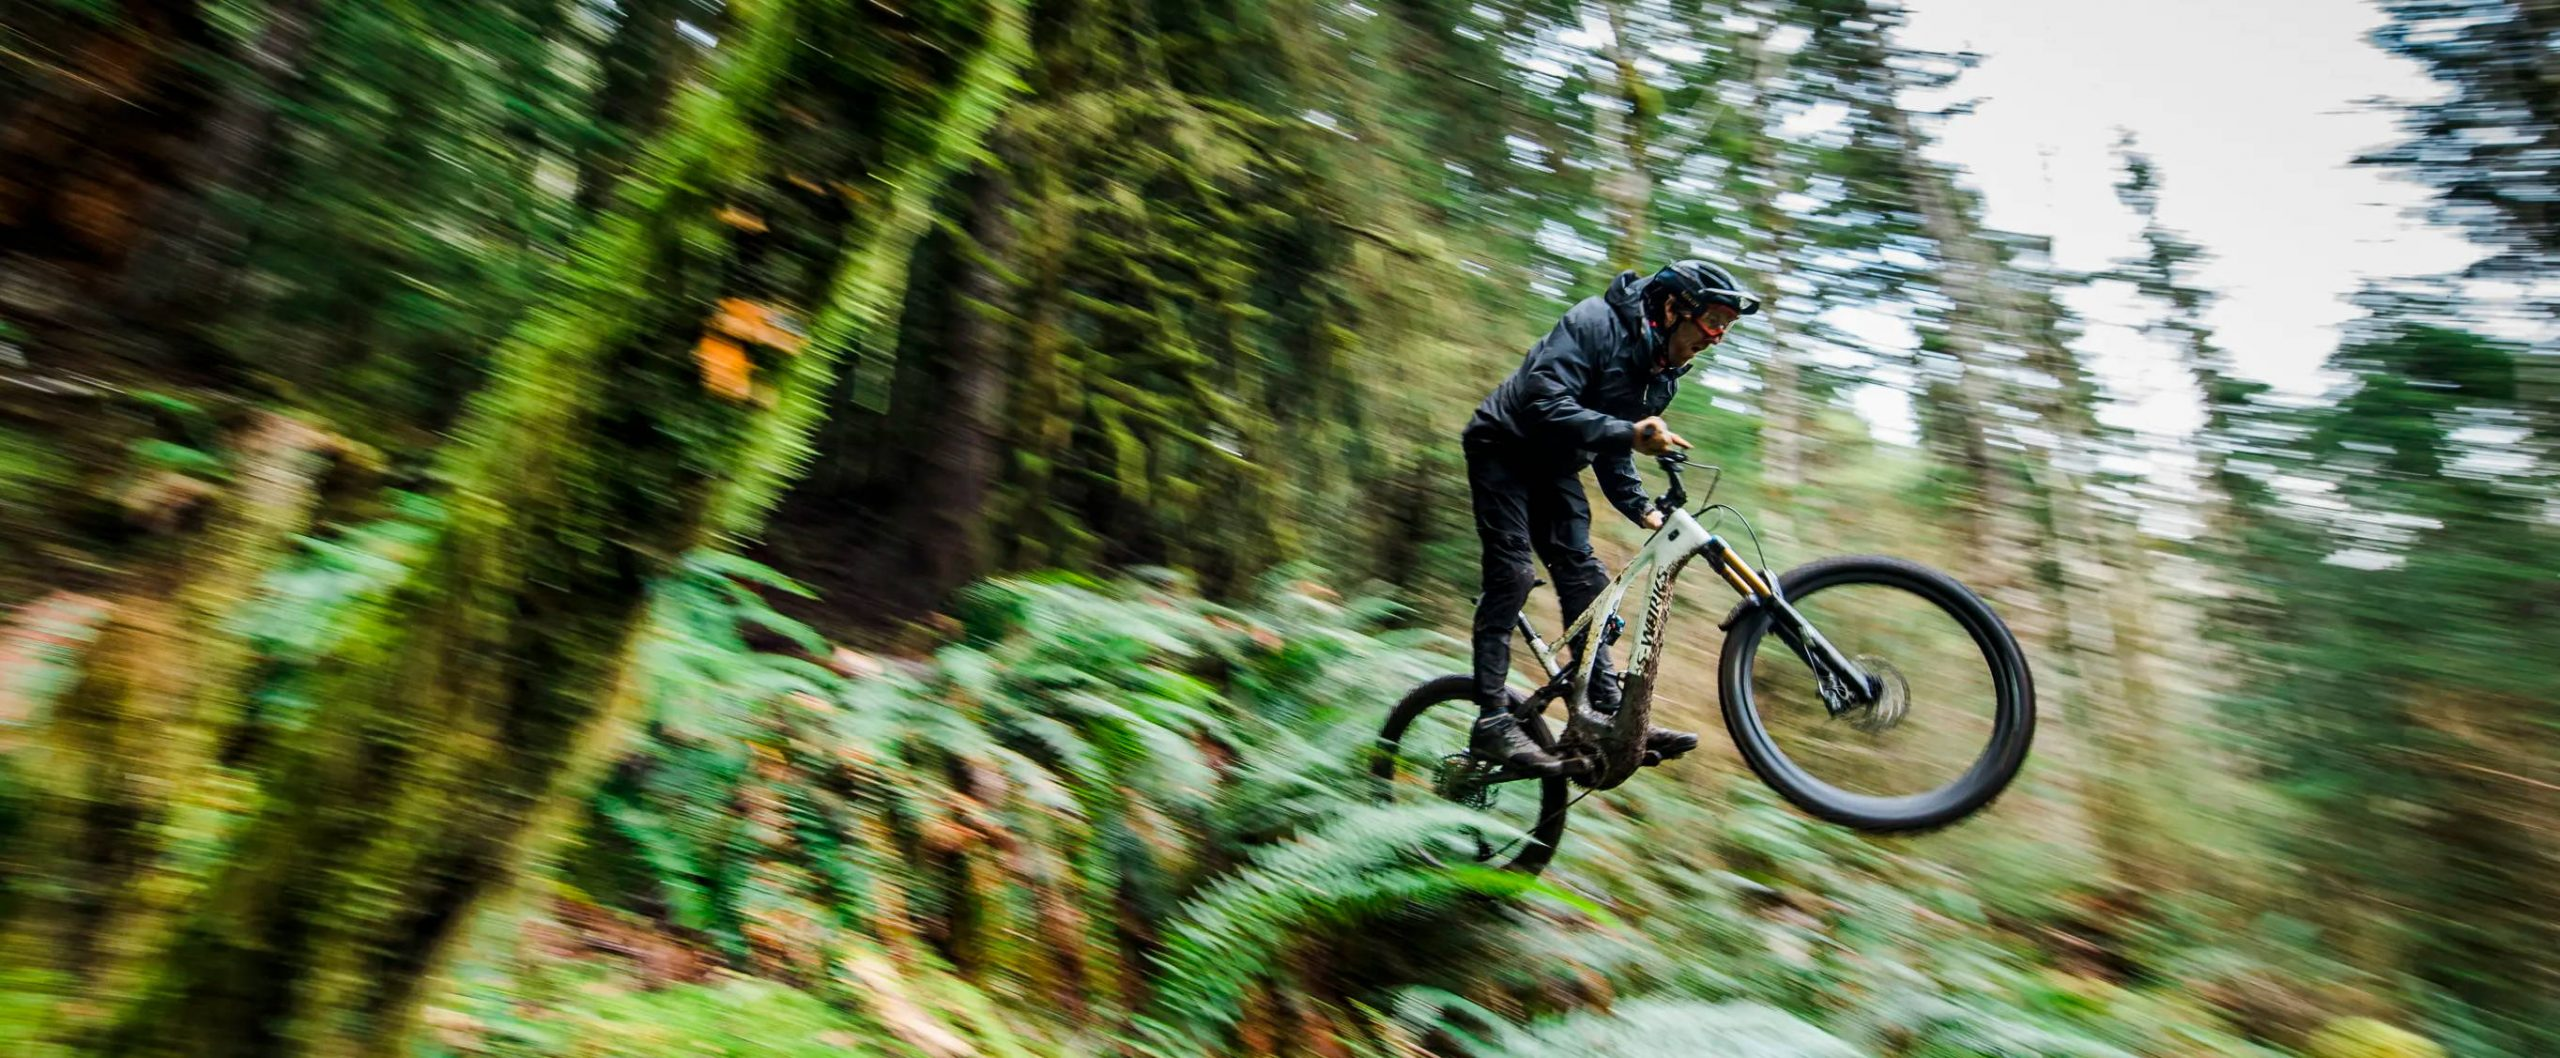 sworks levo scaled The Levo is the King of all E-Trail Bikes